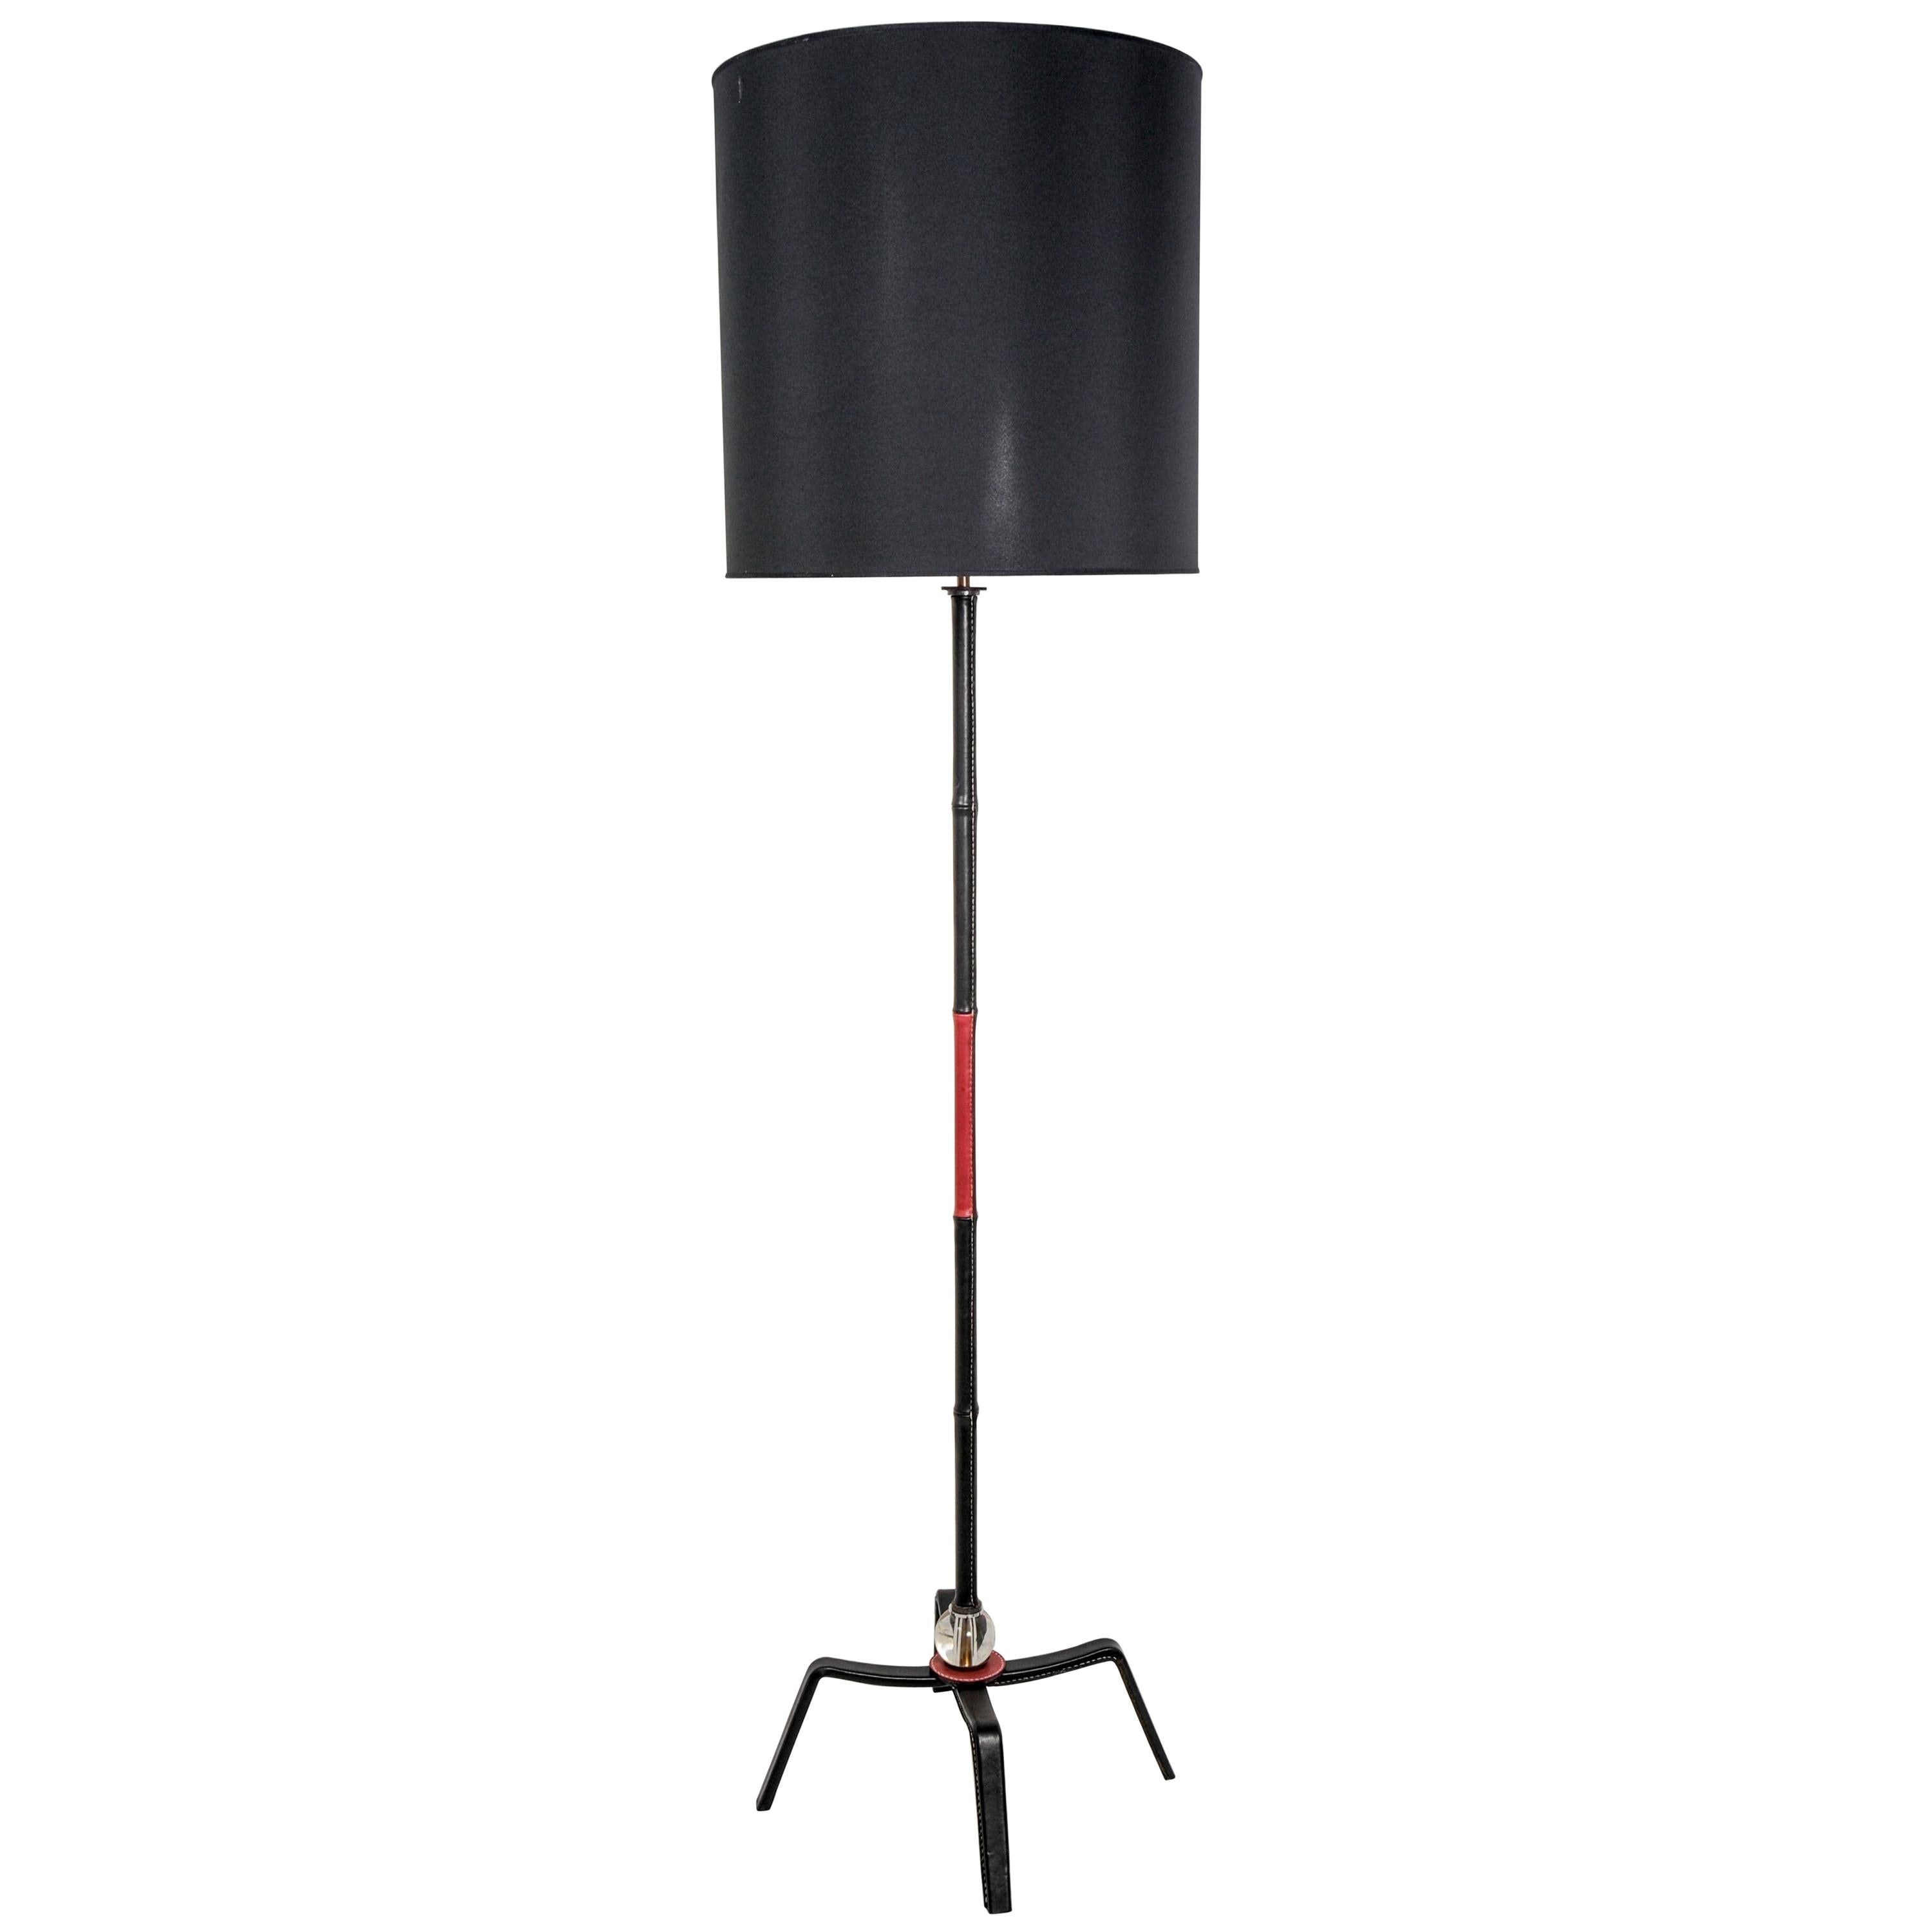 Pair of Stiched Leather Floor Lamps by Jacques Adnet